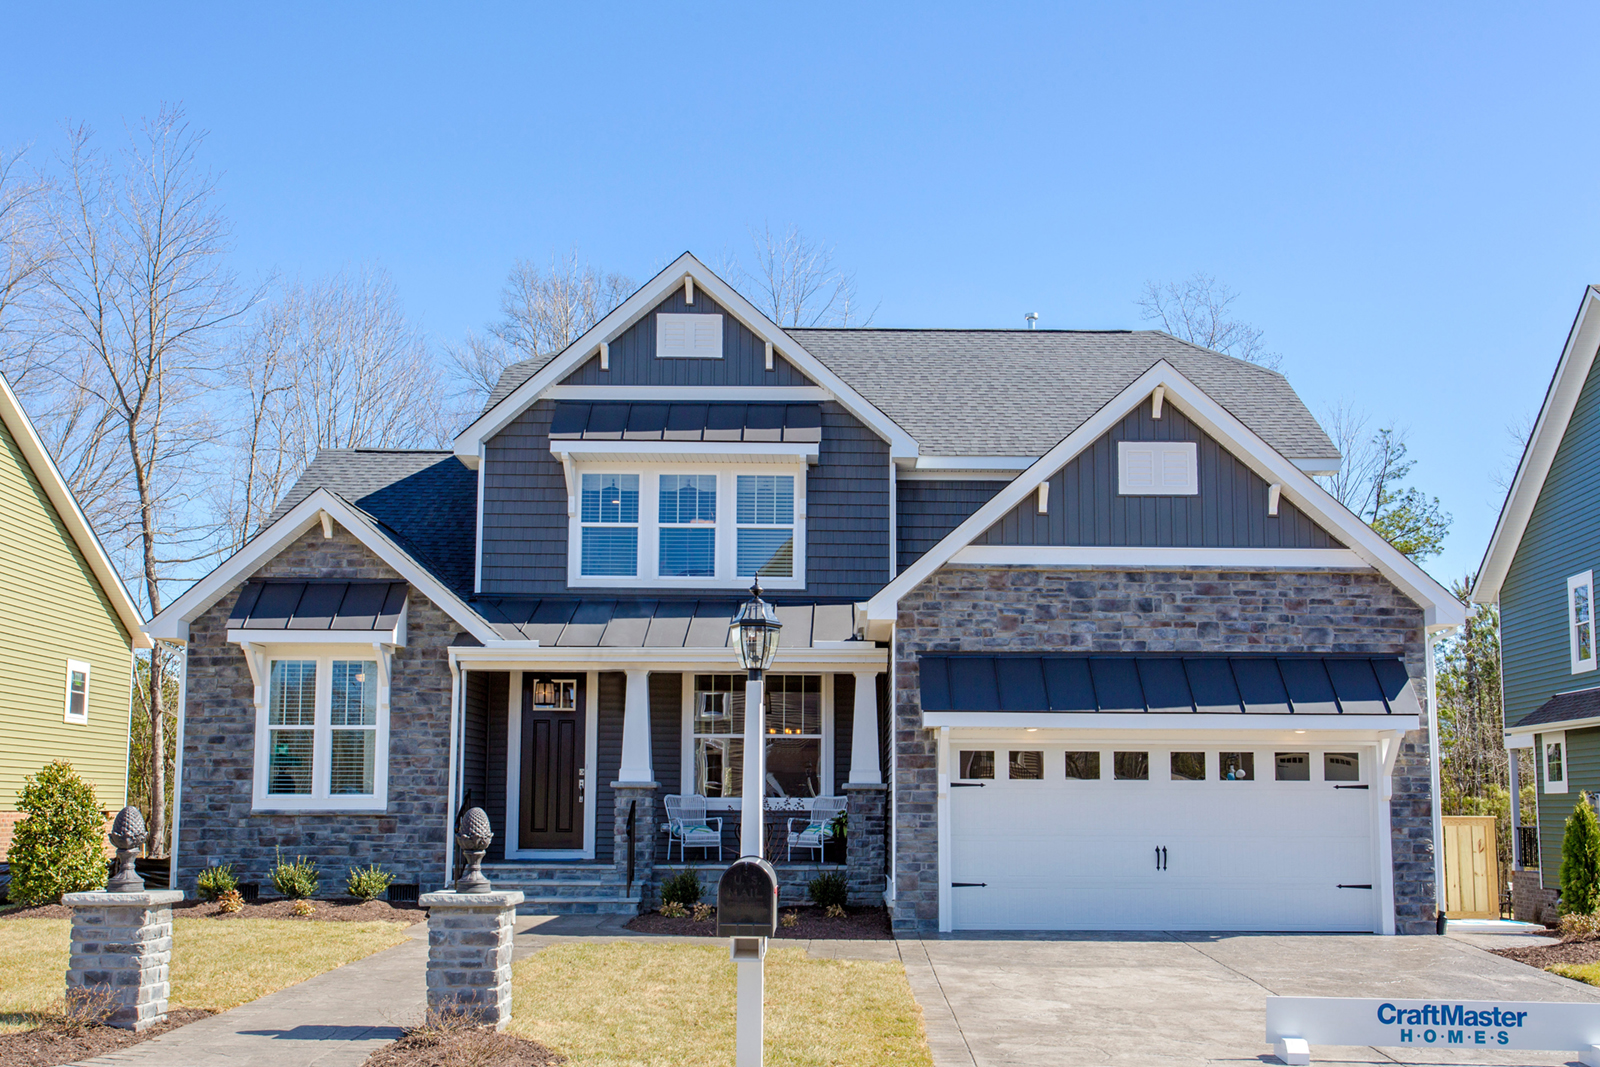 Stunning Encore Home Designs By Craftmaster Photos